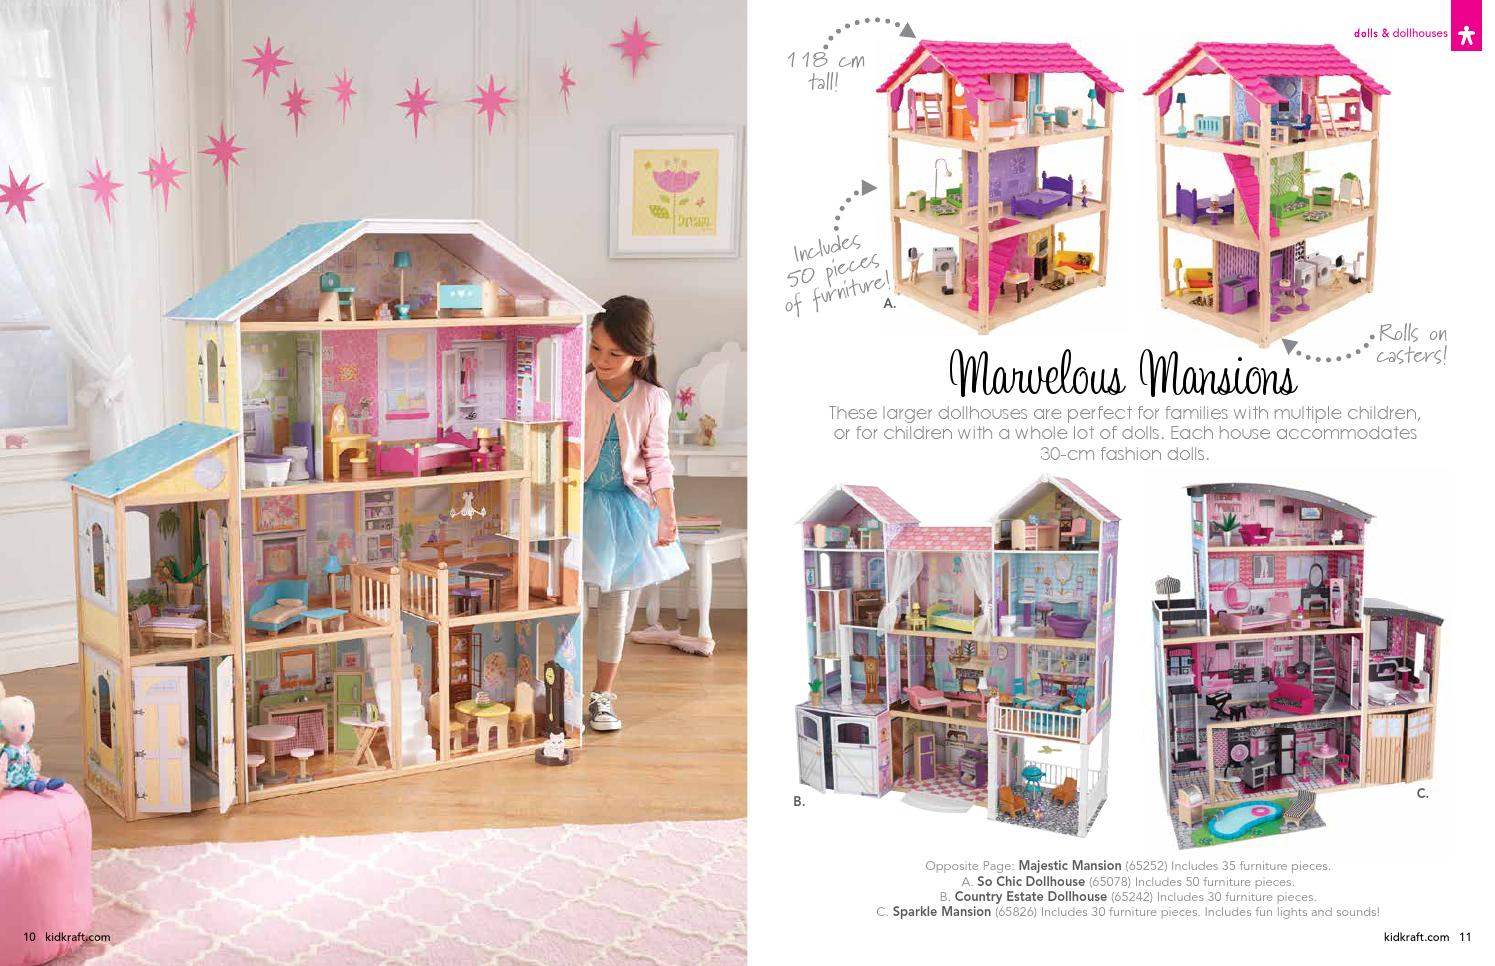 Lovely Kidkraft Majestic Mansion Dollhouse 65252 For Kids Play Room Furniture Ideas: Charming Kidkraft Majestic Mansion Dollhouse 65252 Made Of Wood In Four Tier Design For Kids Play Room Furniture Ideas